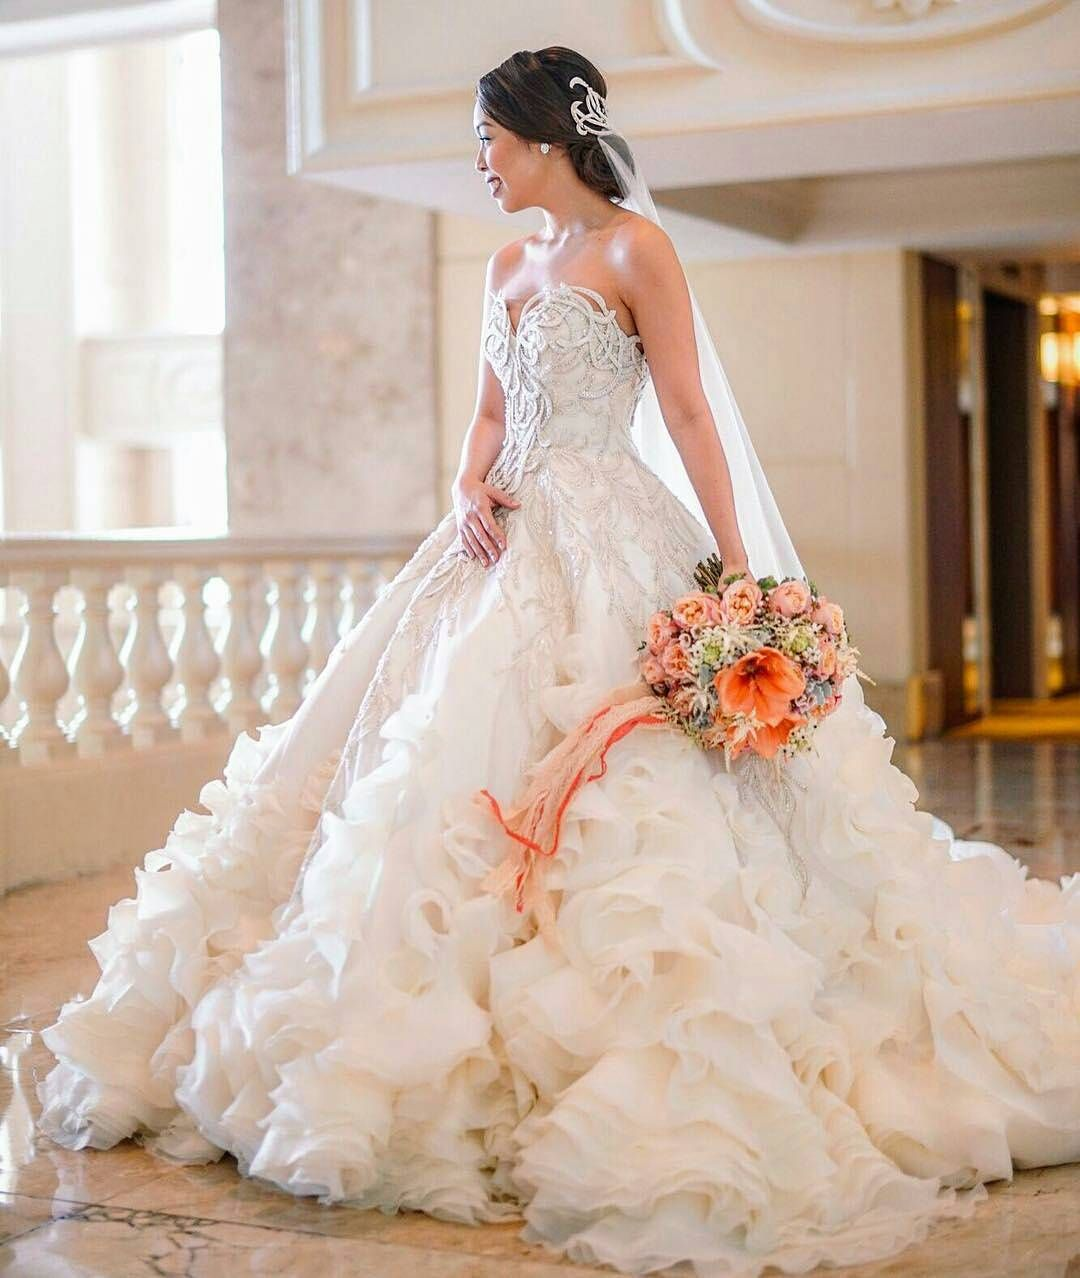 The Perfect Wedding Gown: Every Girl Dreams Of The Perfect Wedding